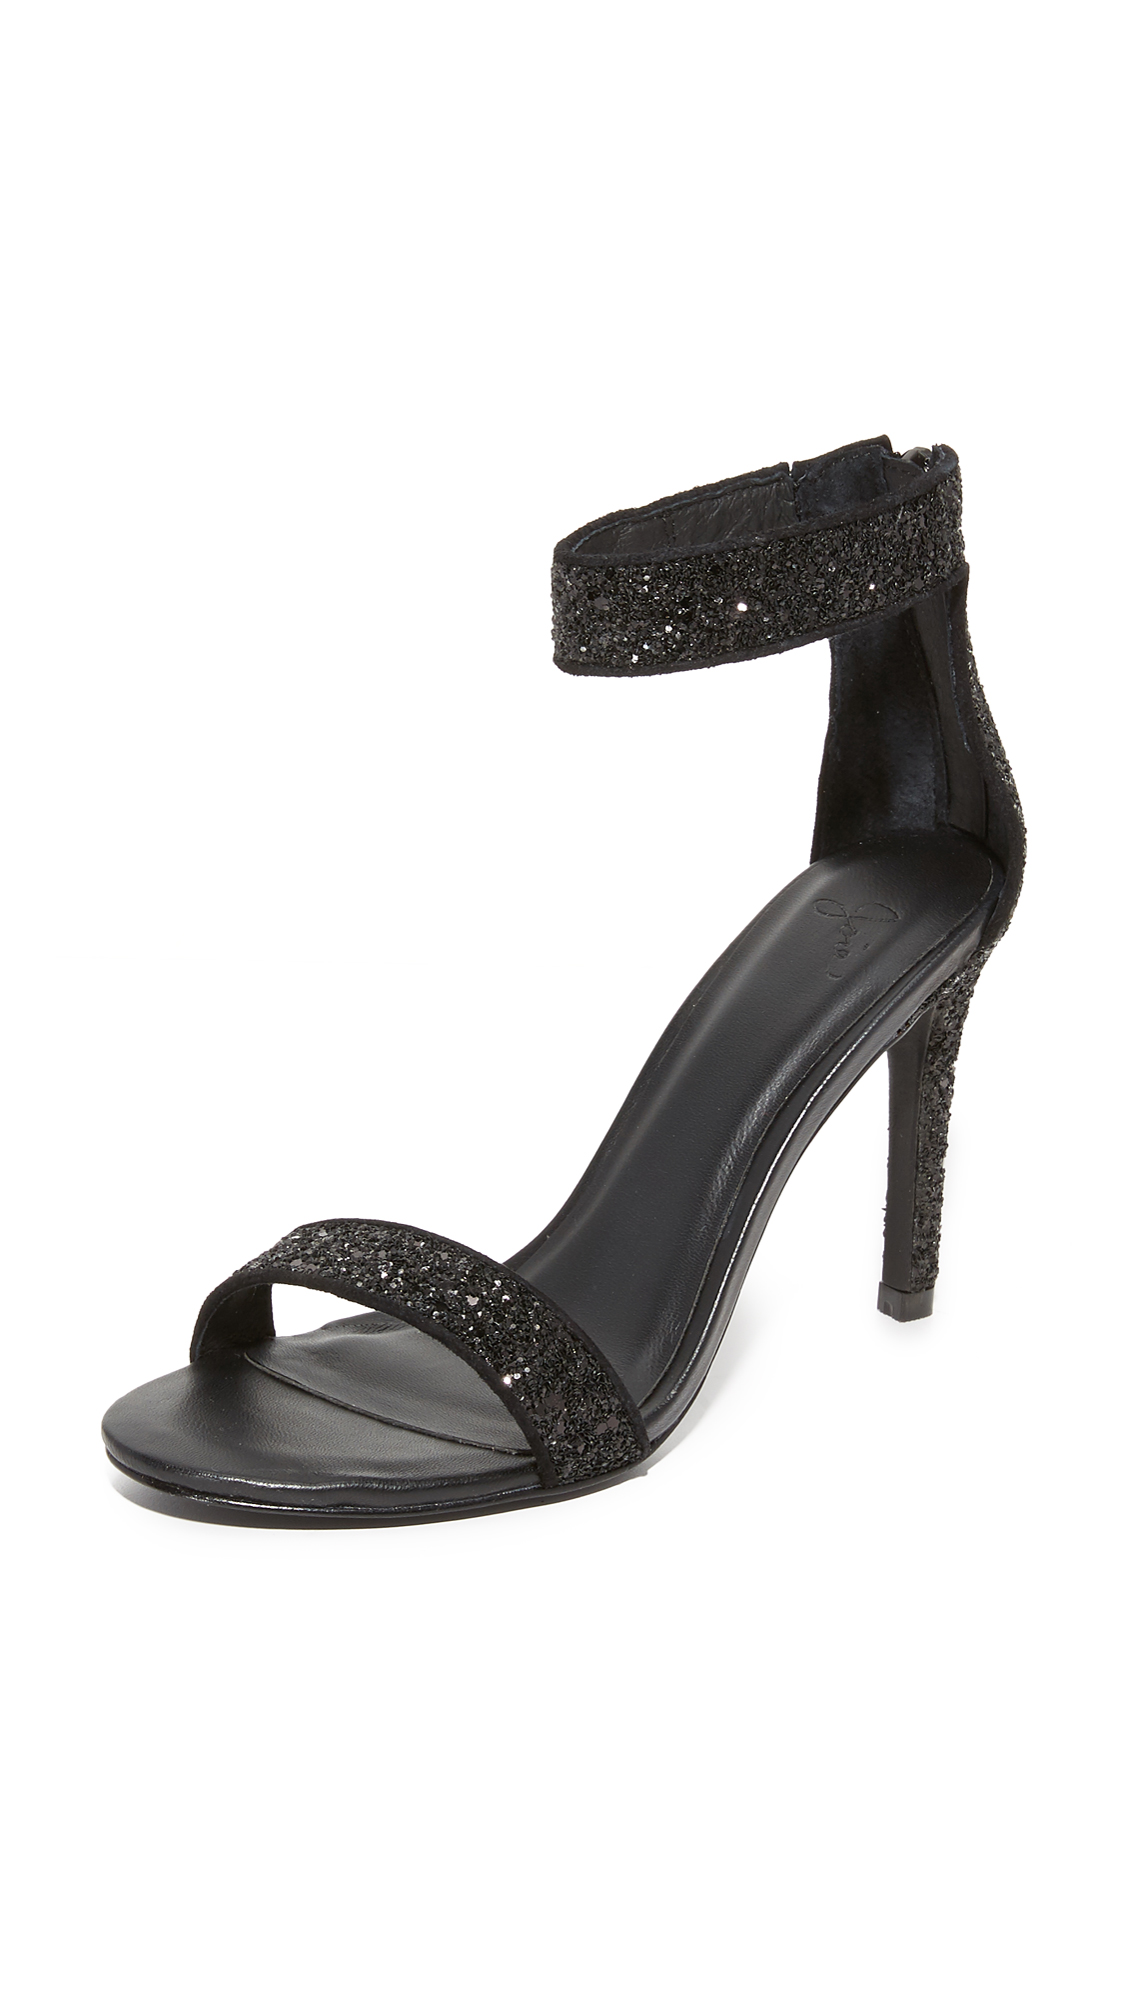 Joie Adriana Sandals - Black at Shopbop